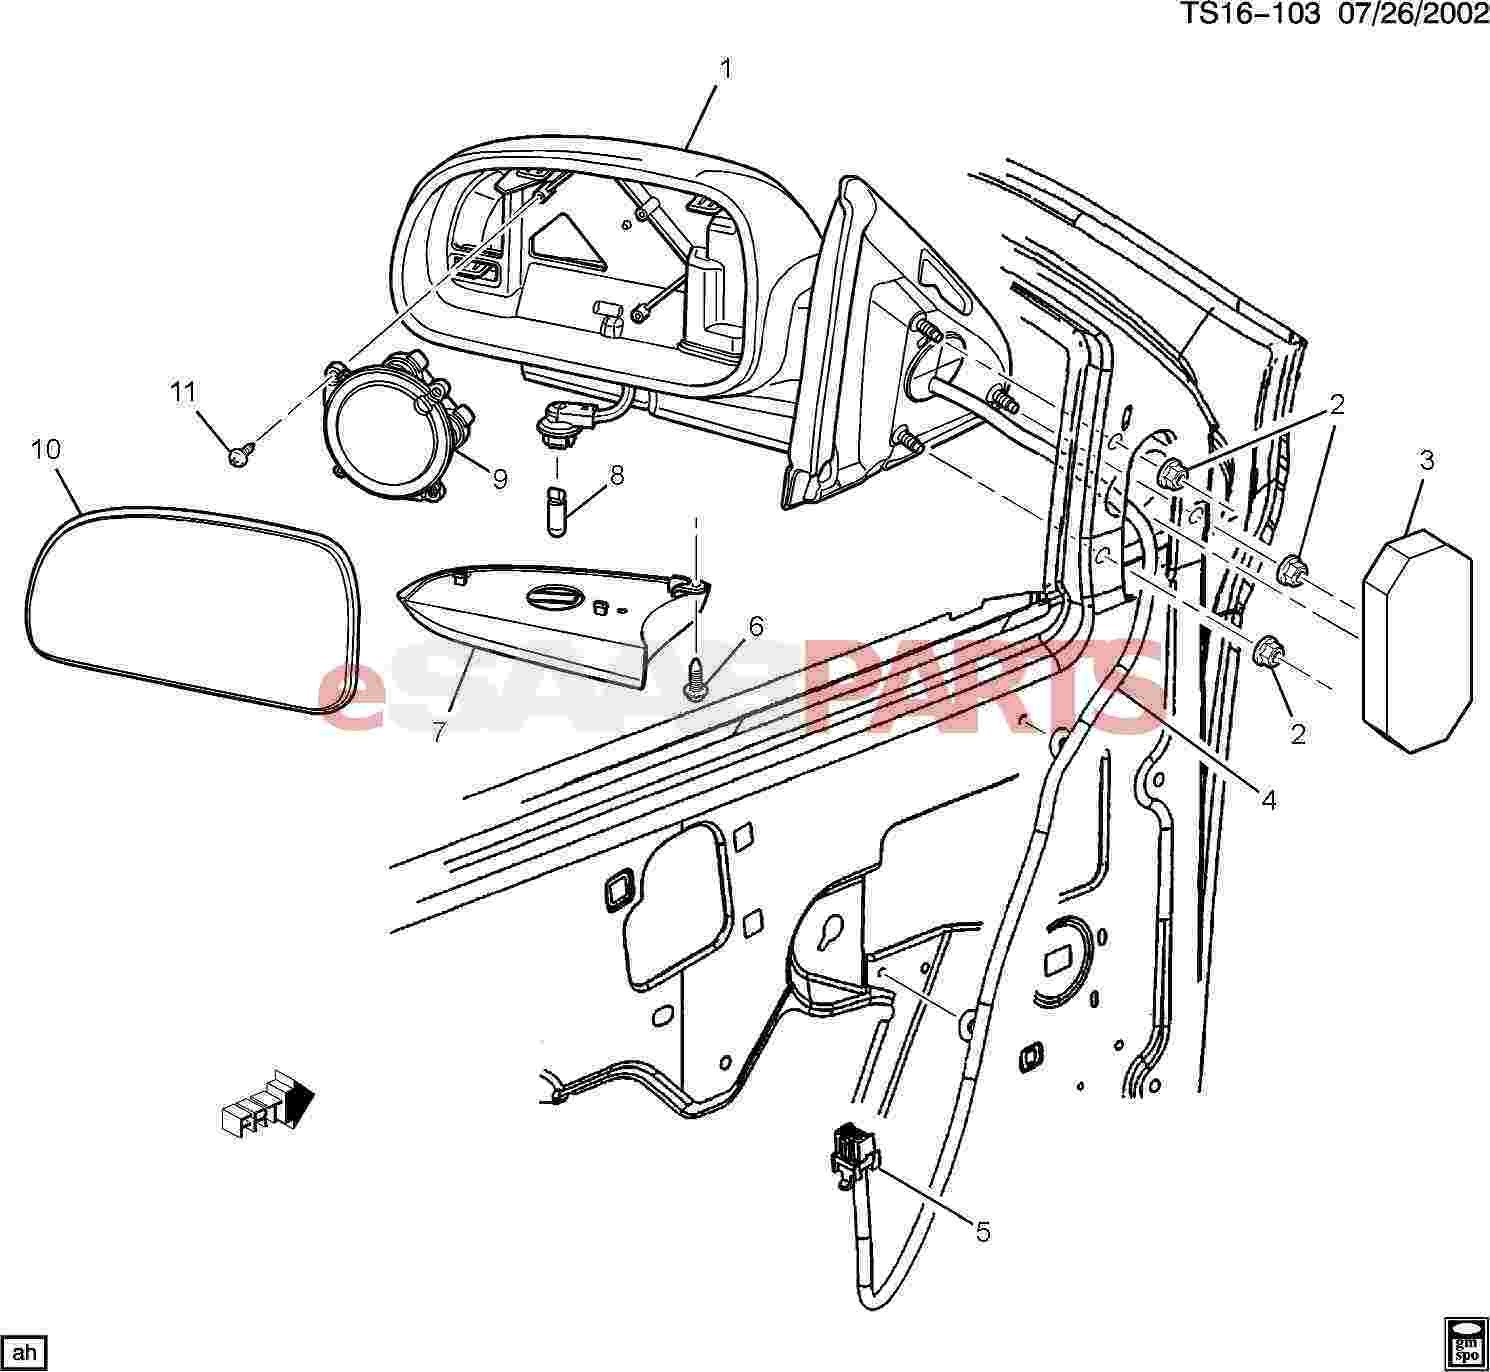 Exterior Car Parts Diagram Esaabparts Saab 9 7x Car Body External Parts Mirrors Of Exterior Car Parts Diagram